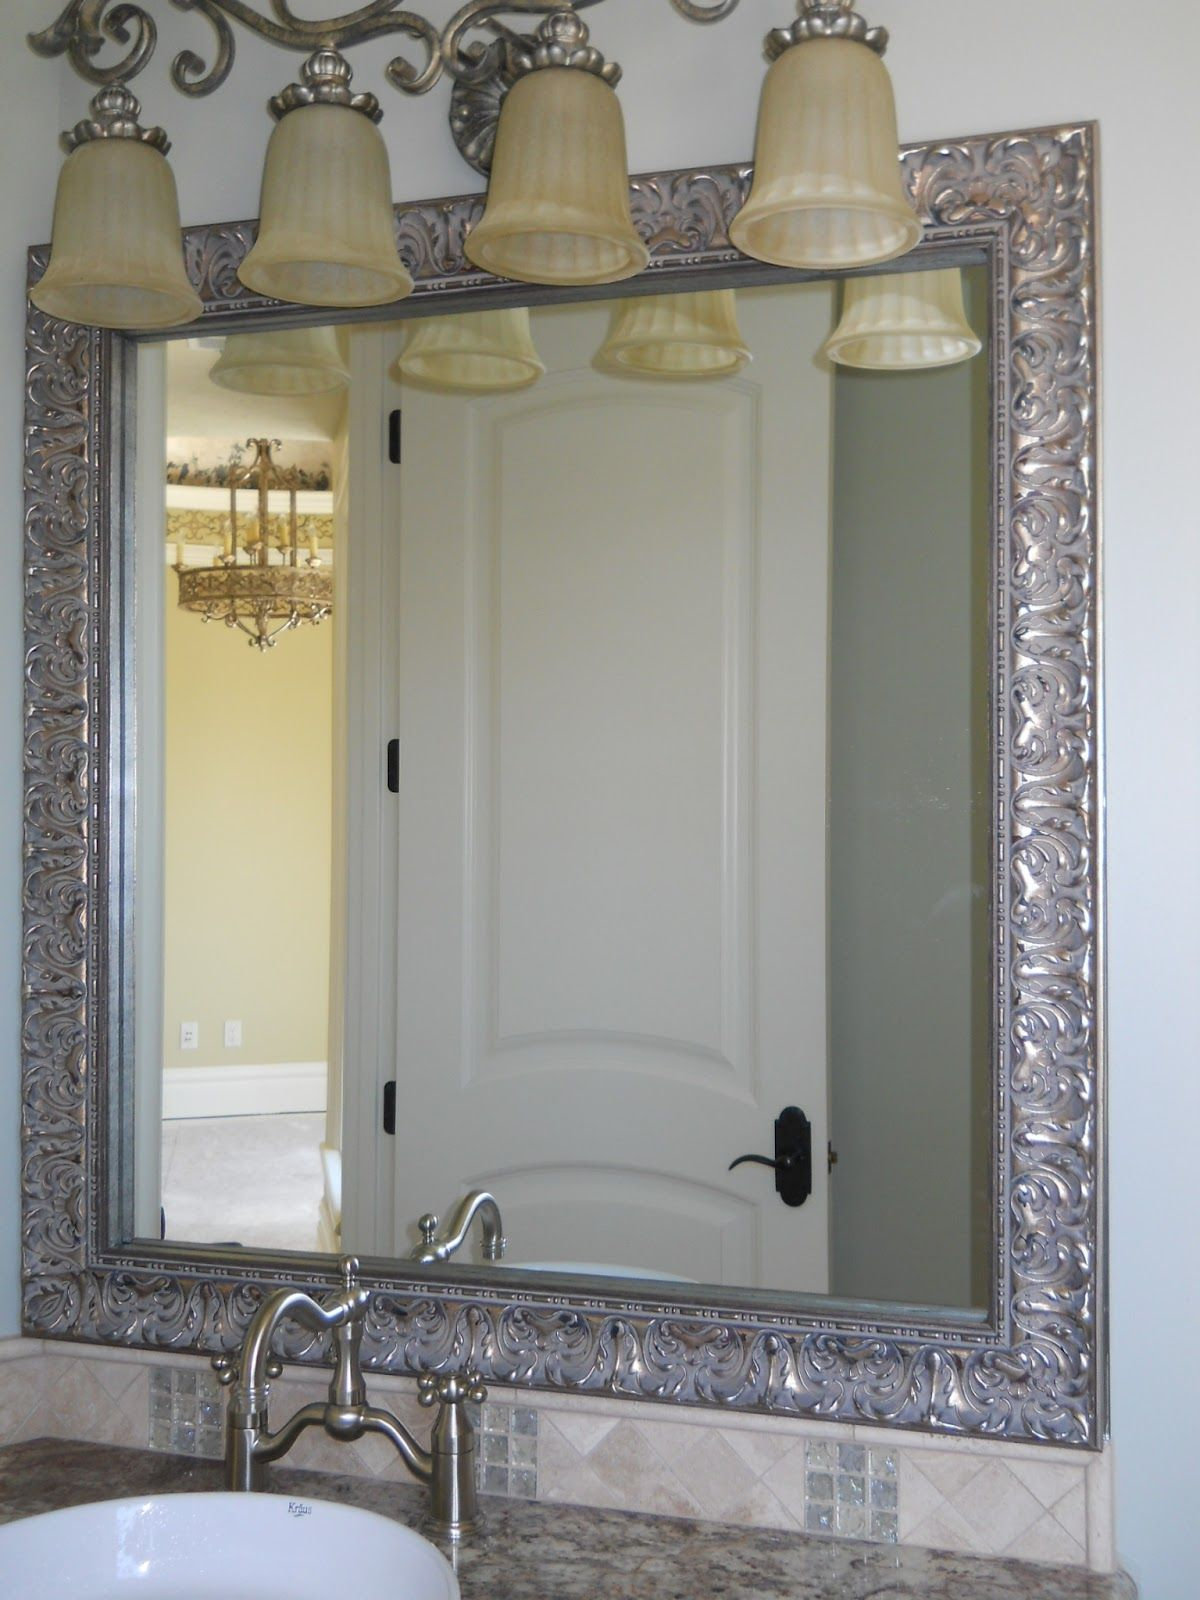 Awesome Websites Mirror Frame Kit Reflected Design Custom Mirror Frame Kits Bathroom Mirror Kits